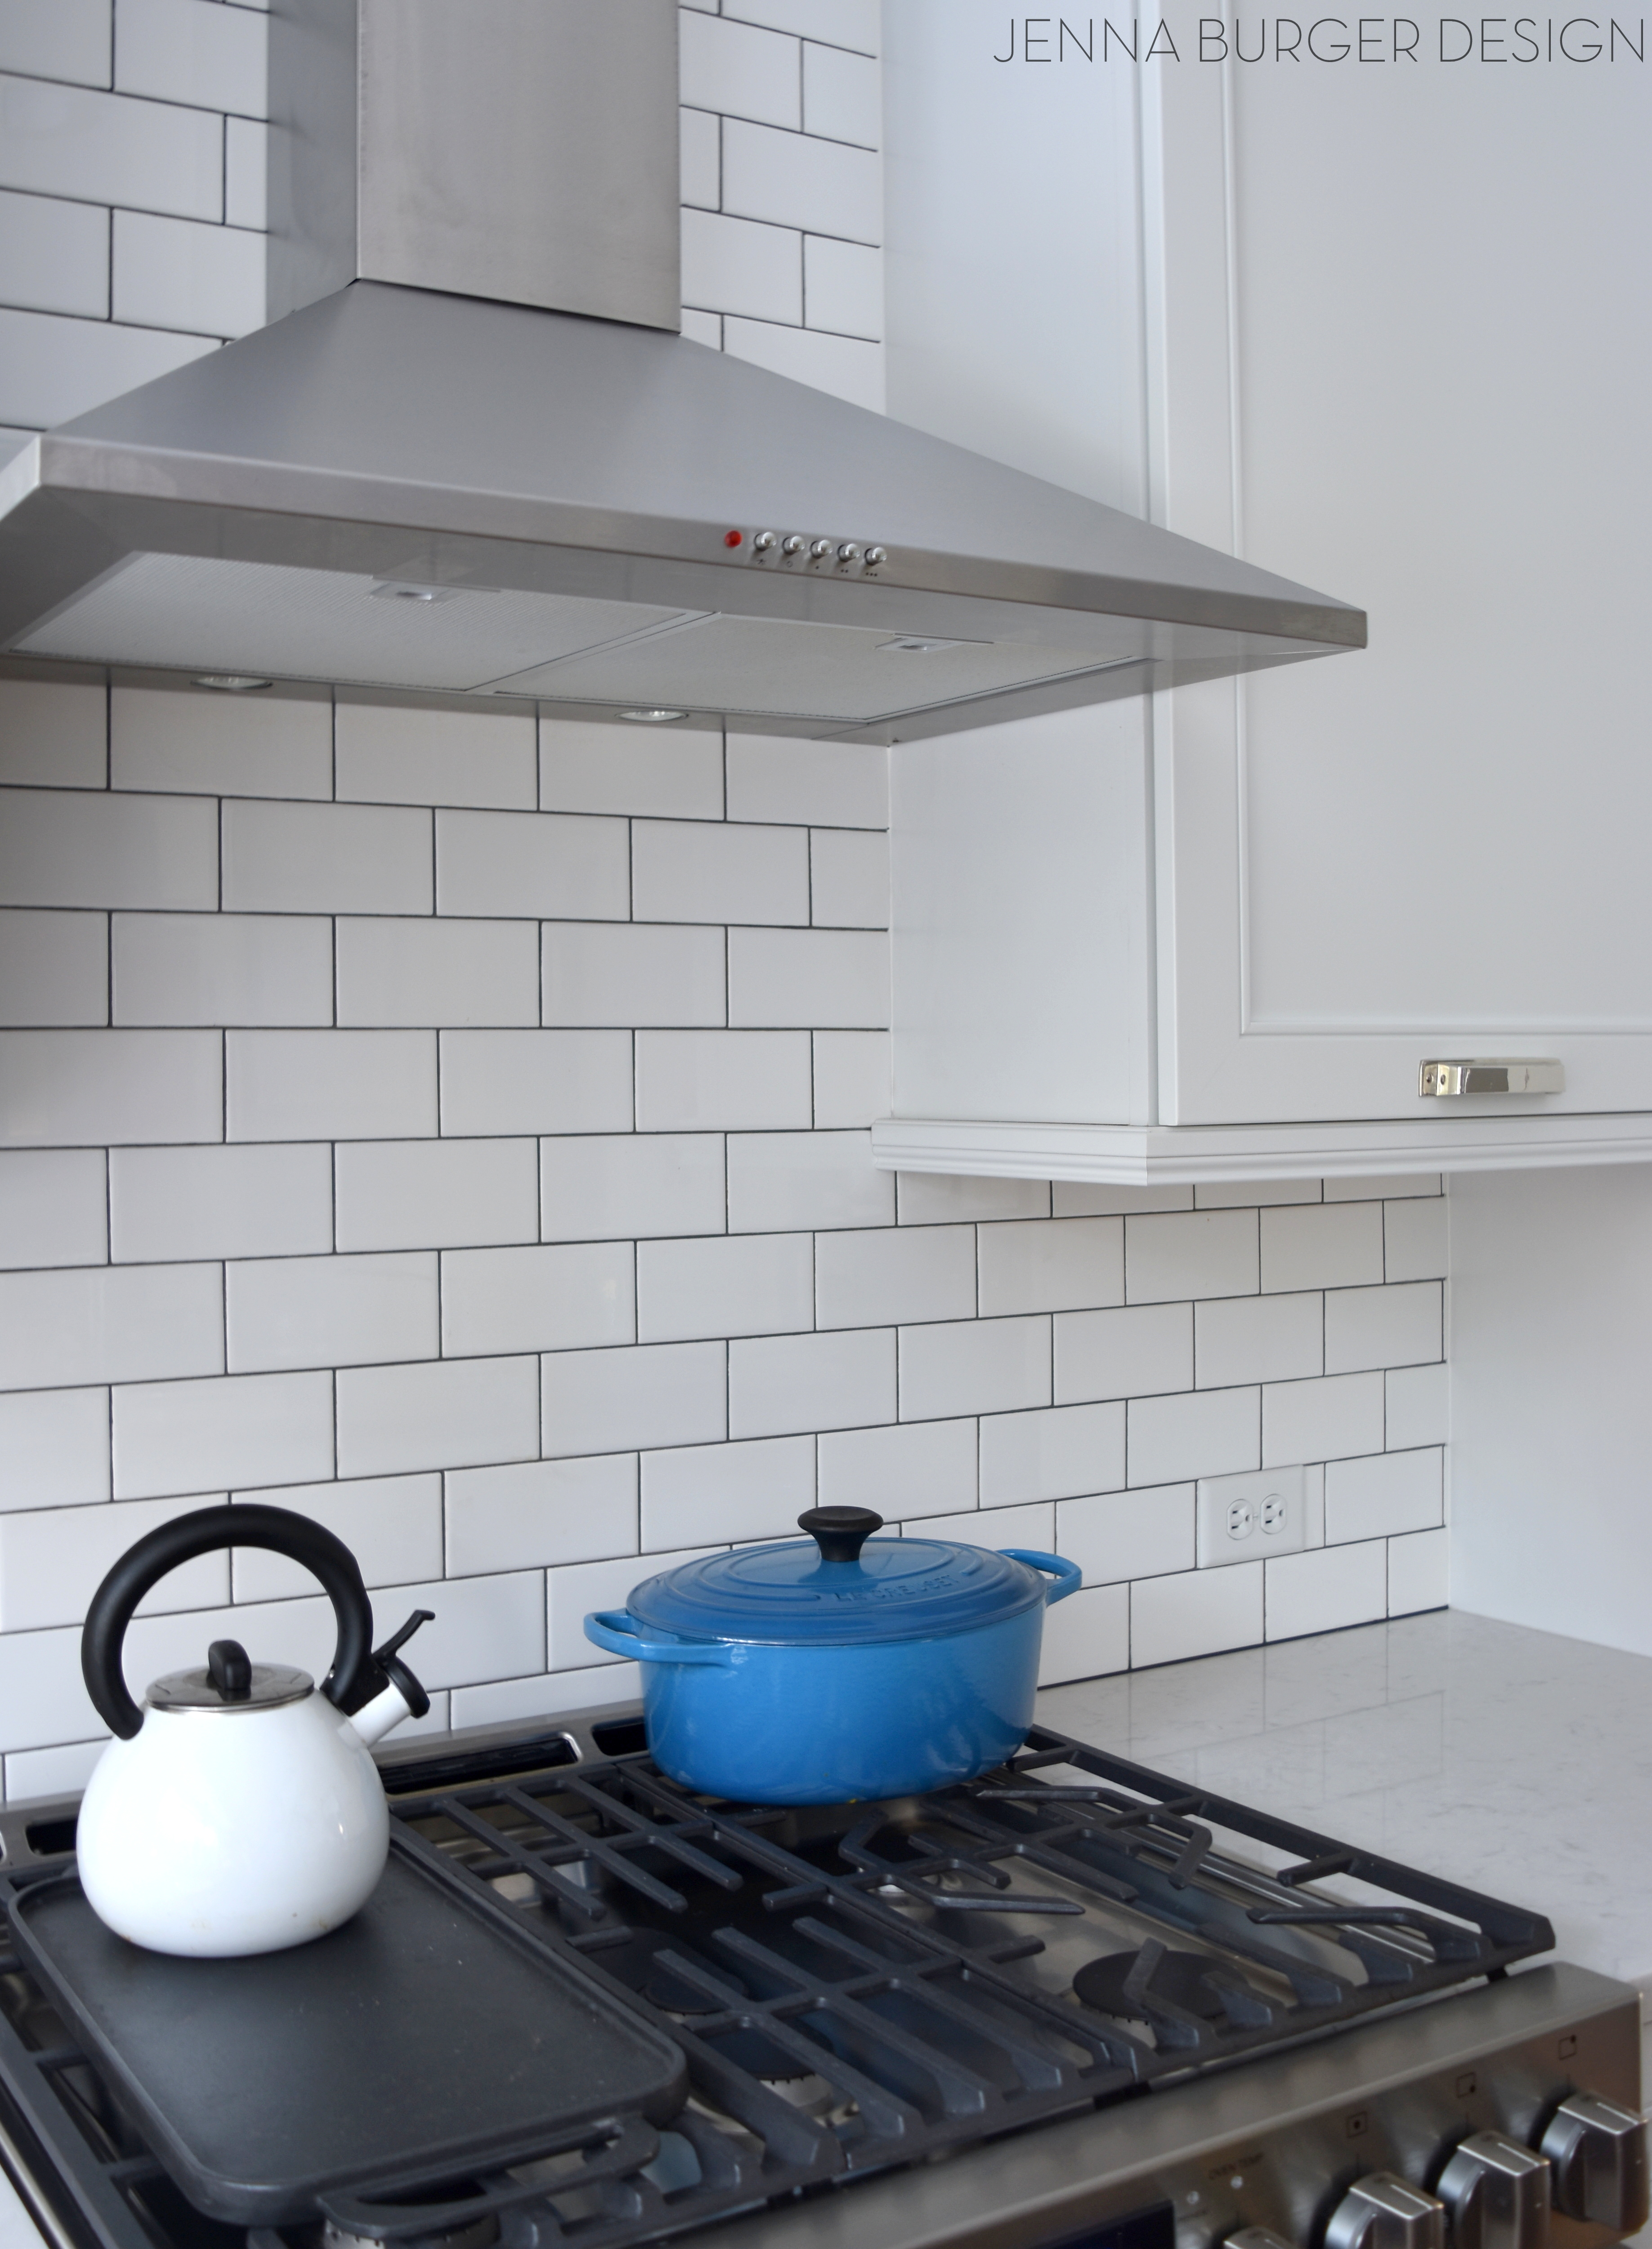 subway tile kitchen backsplash installation subway tile kitchen backsplash Subway Tile There are many styles colors How do you choose the right